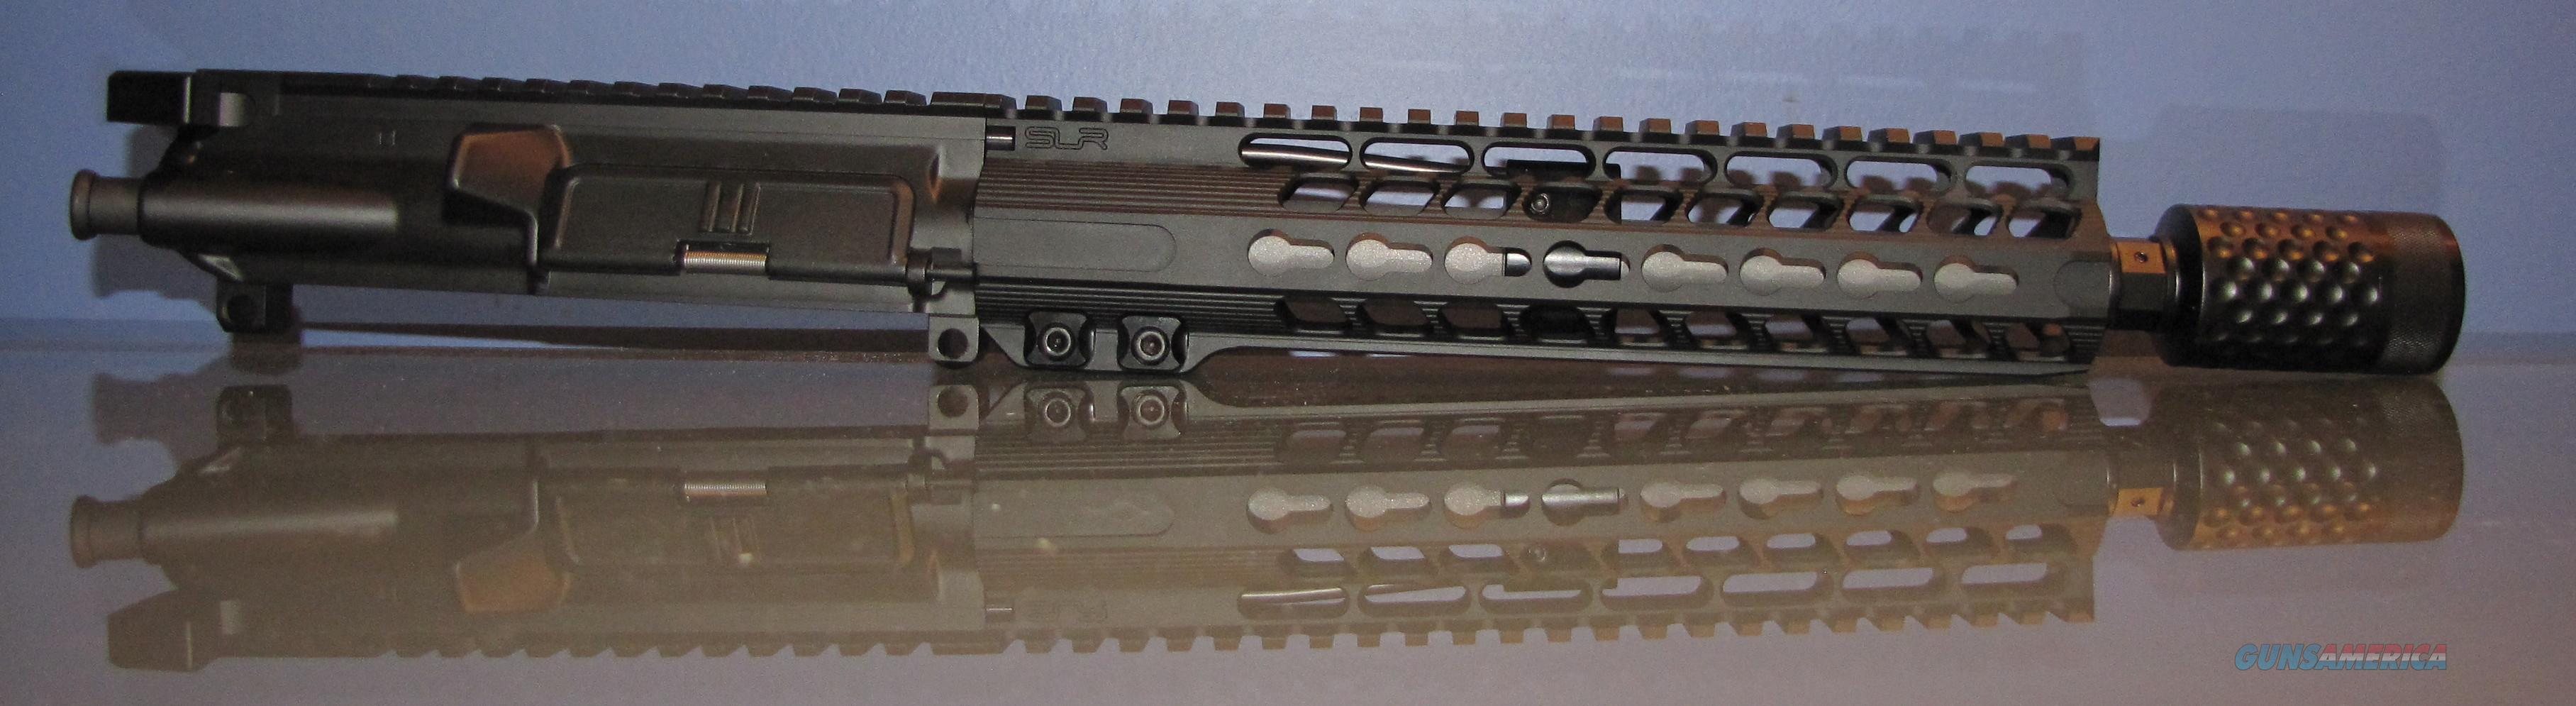 "B.T.A. ""Match-X300"" 10"" 300BLKOUT AR15 upper  Non-Guns > Gun Parts > M16-AR15 > Upper Only"